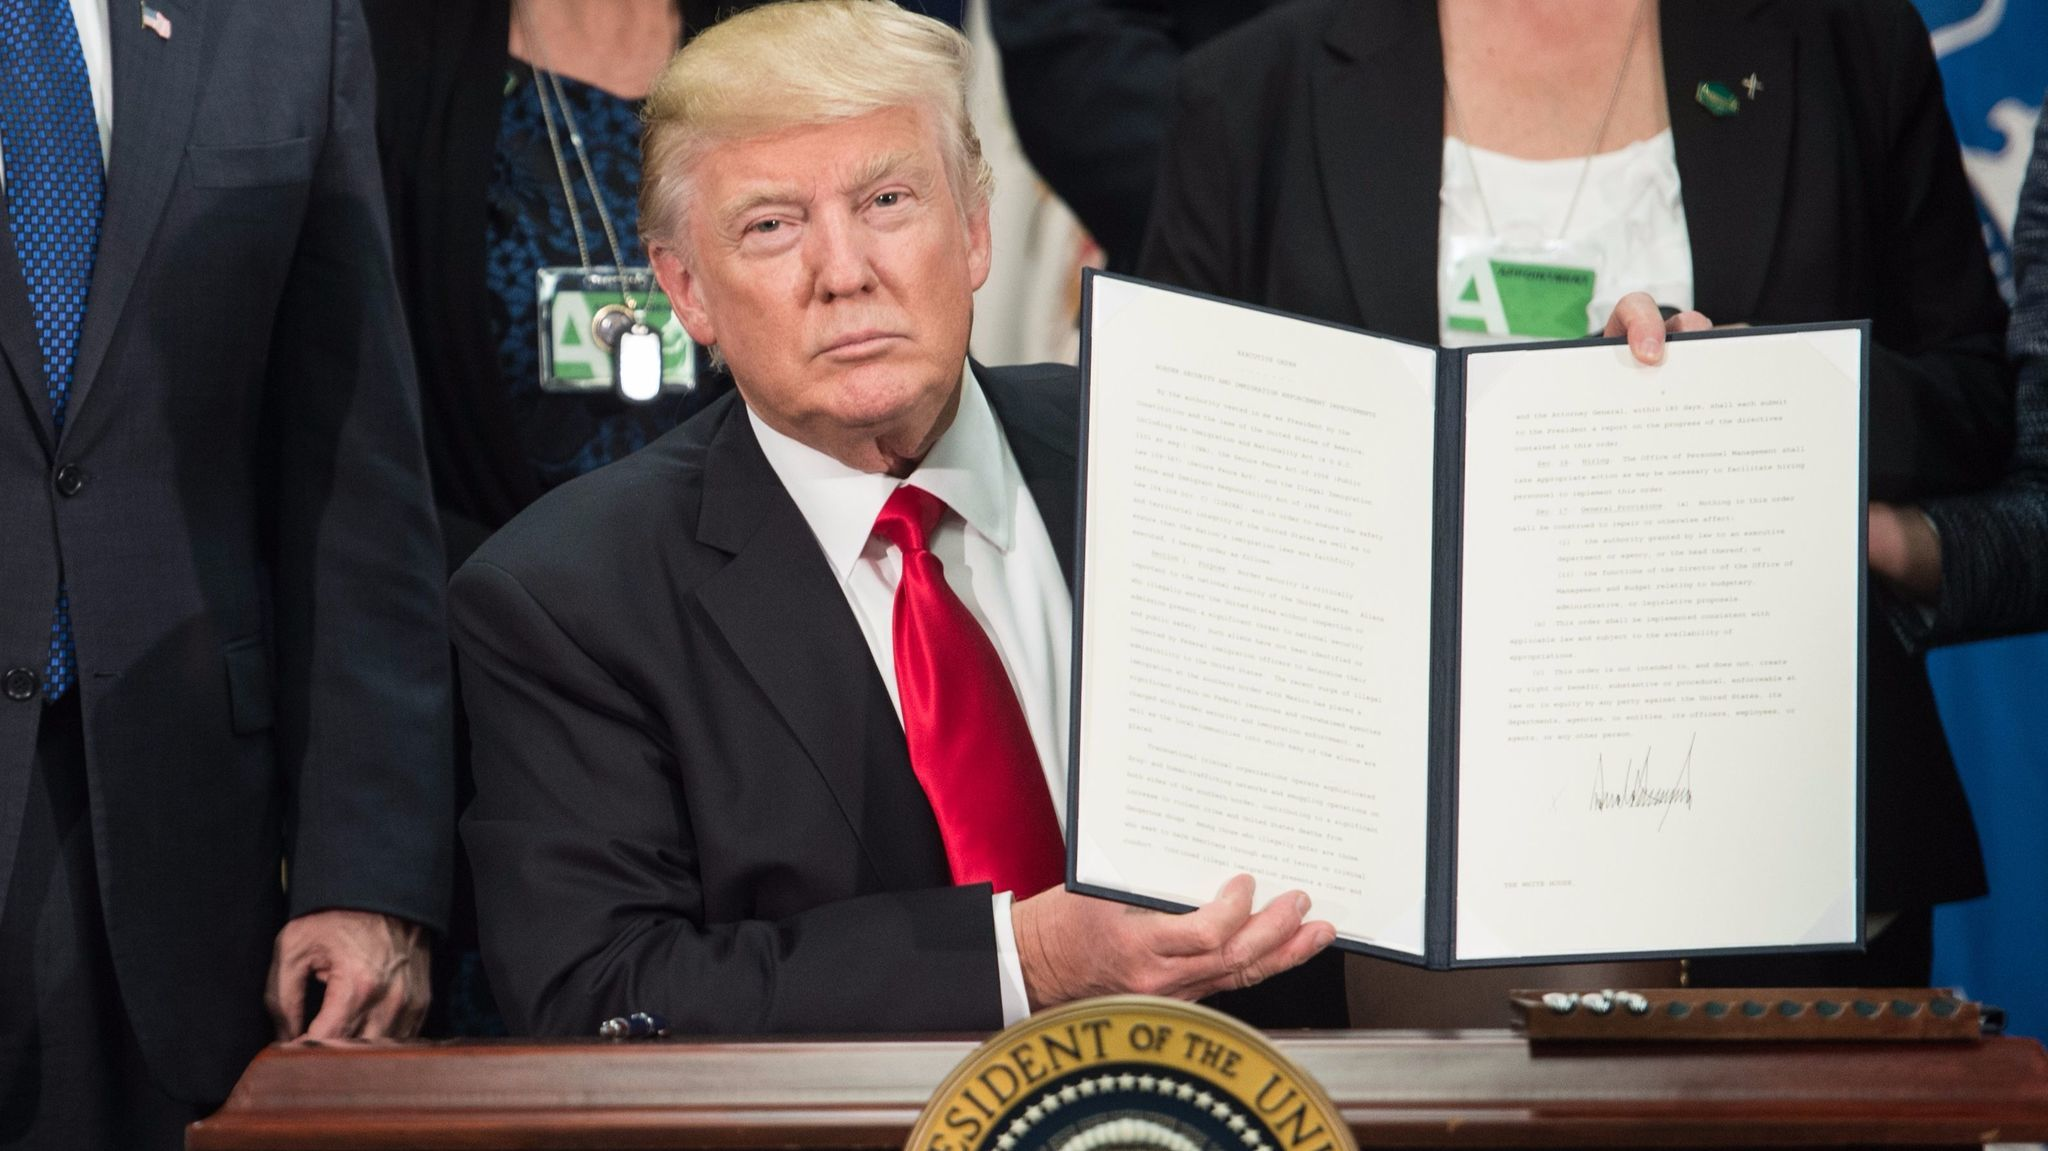 President Trump signs an executive order to start the Mexico border wall project on Jan. 25.